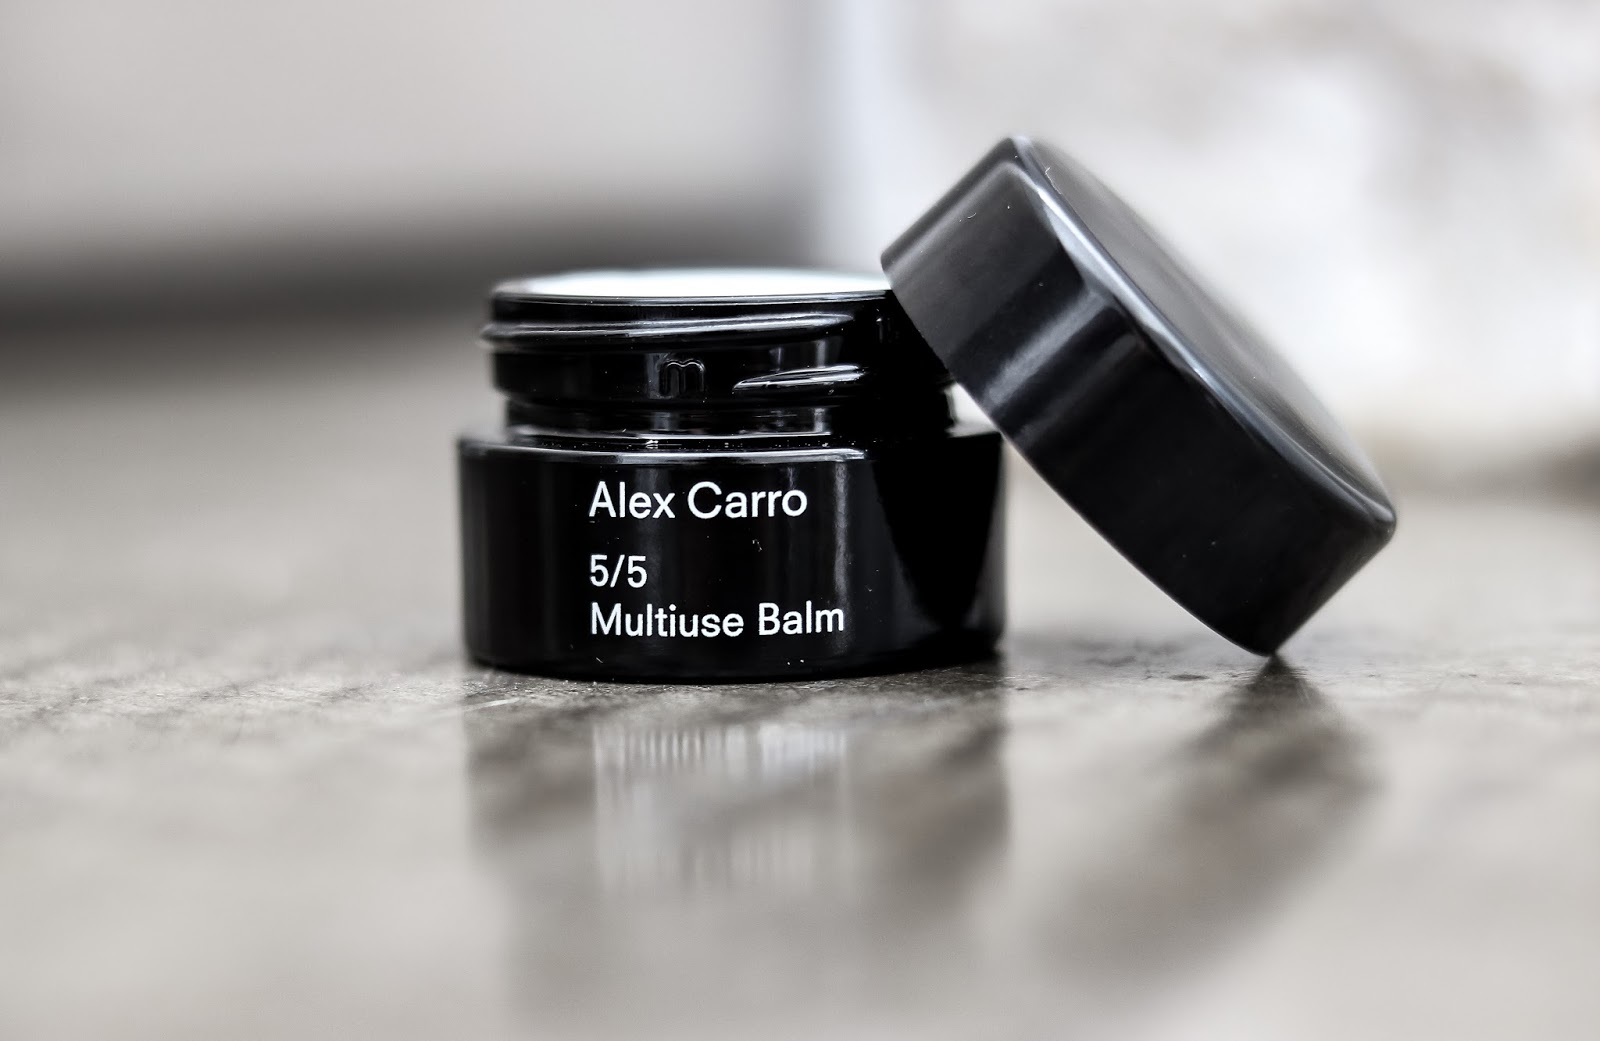 Multiuse Balm Alex Carro Minimal Skincare Review by Almost Chic Blog